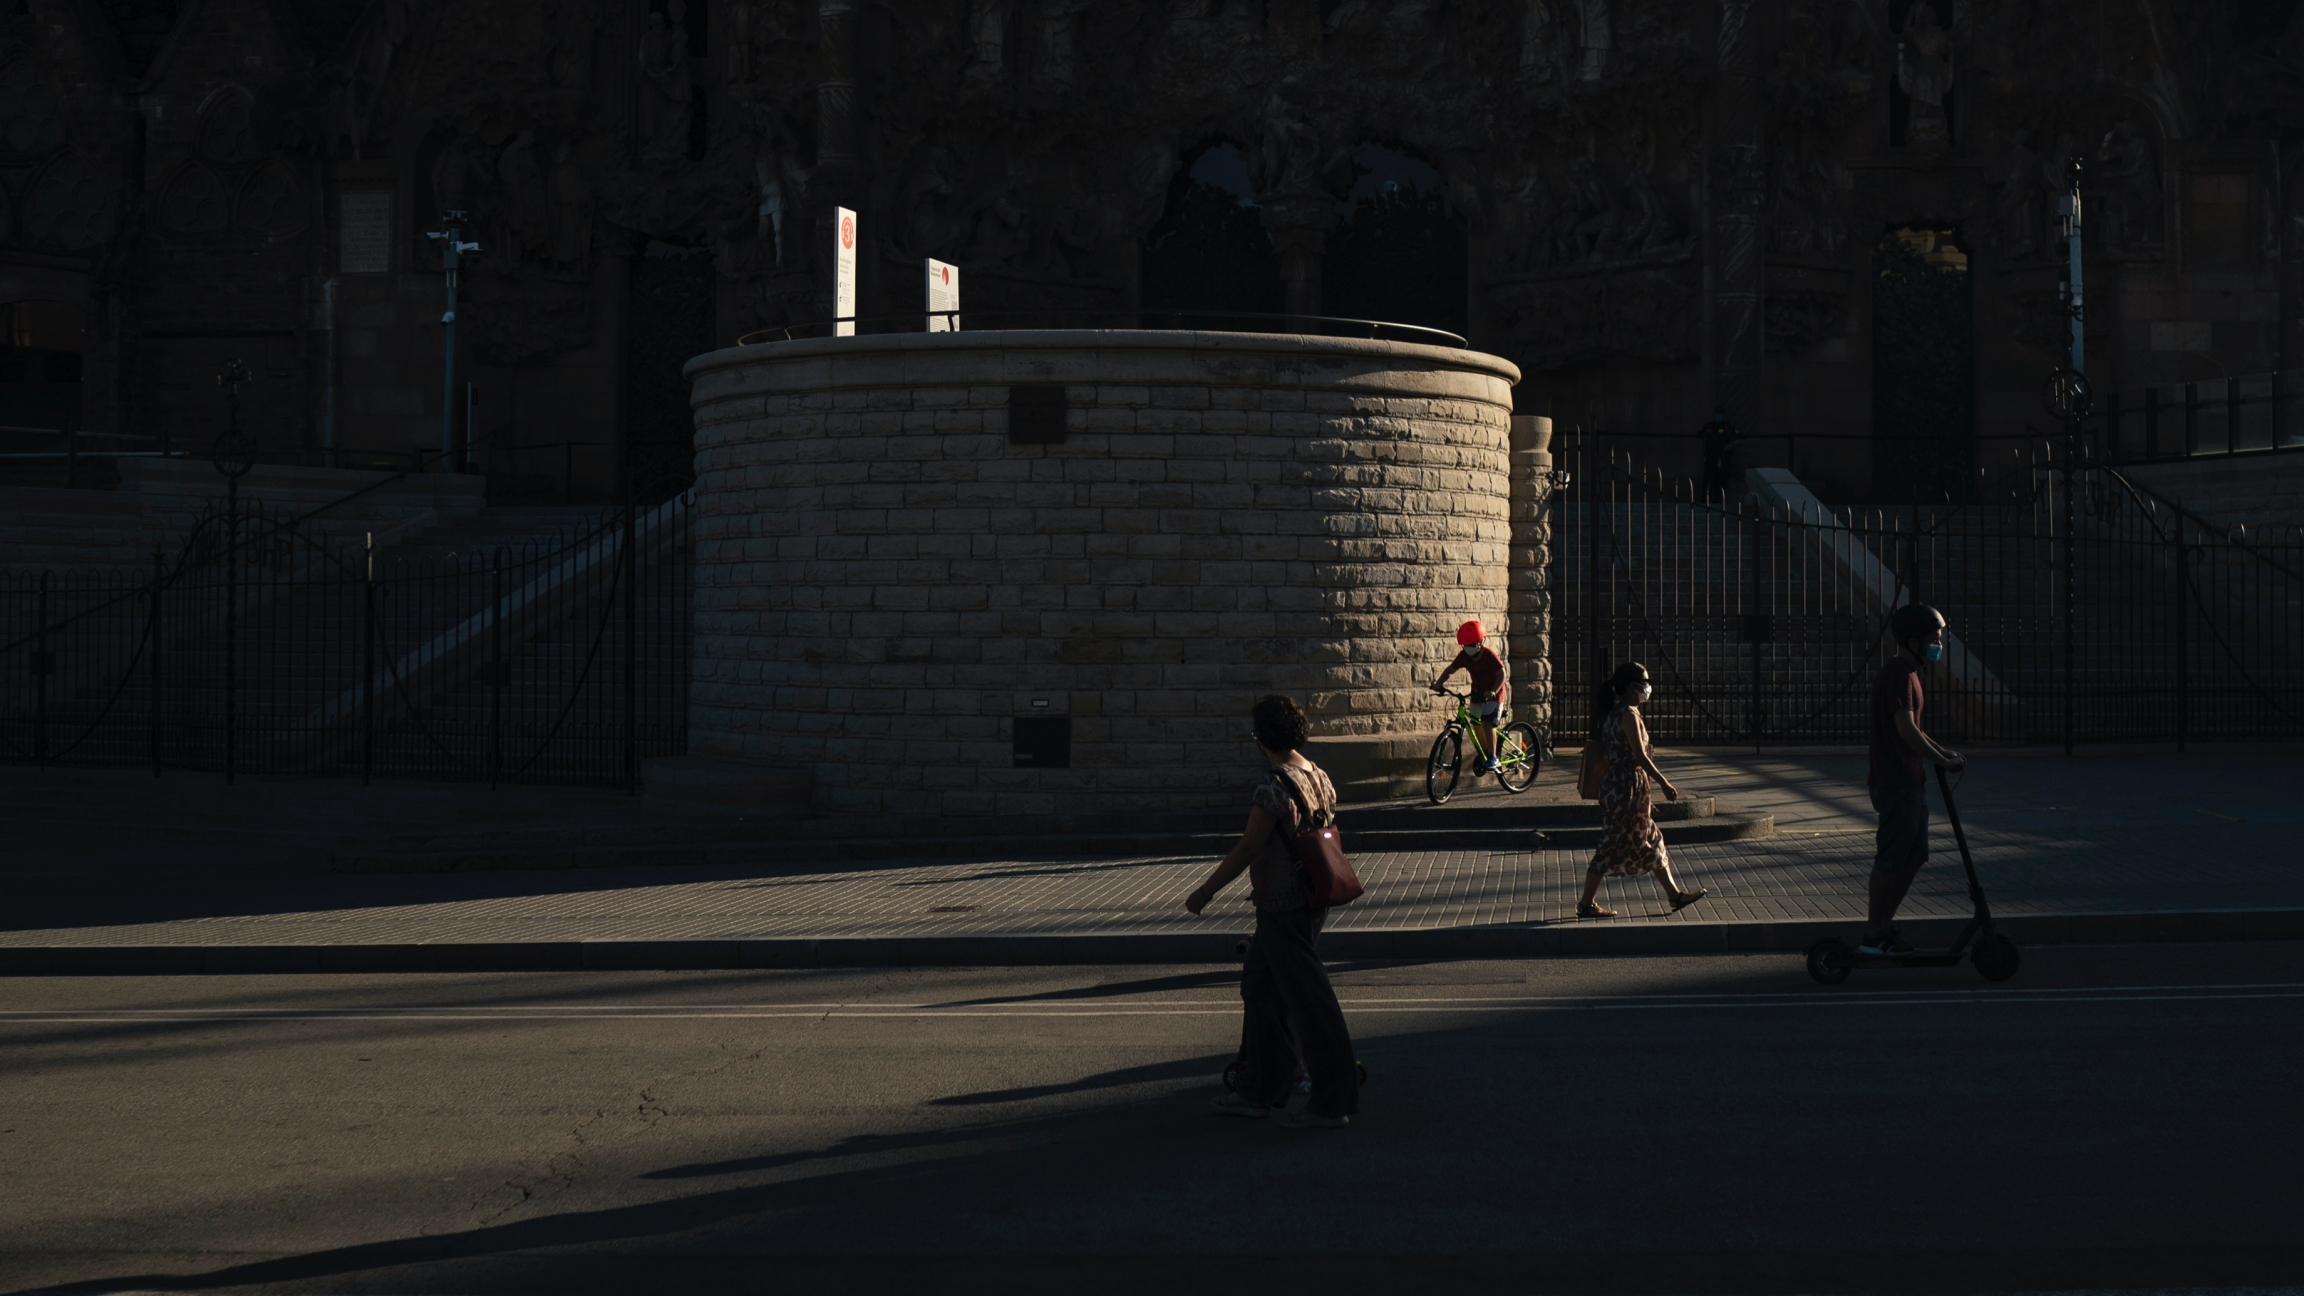 A few people walk or bike in shadows near a large building.